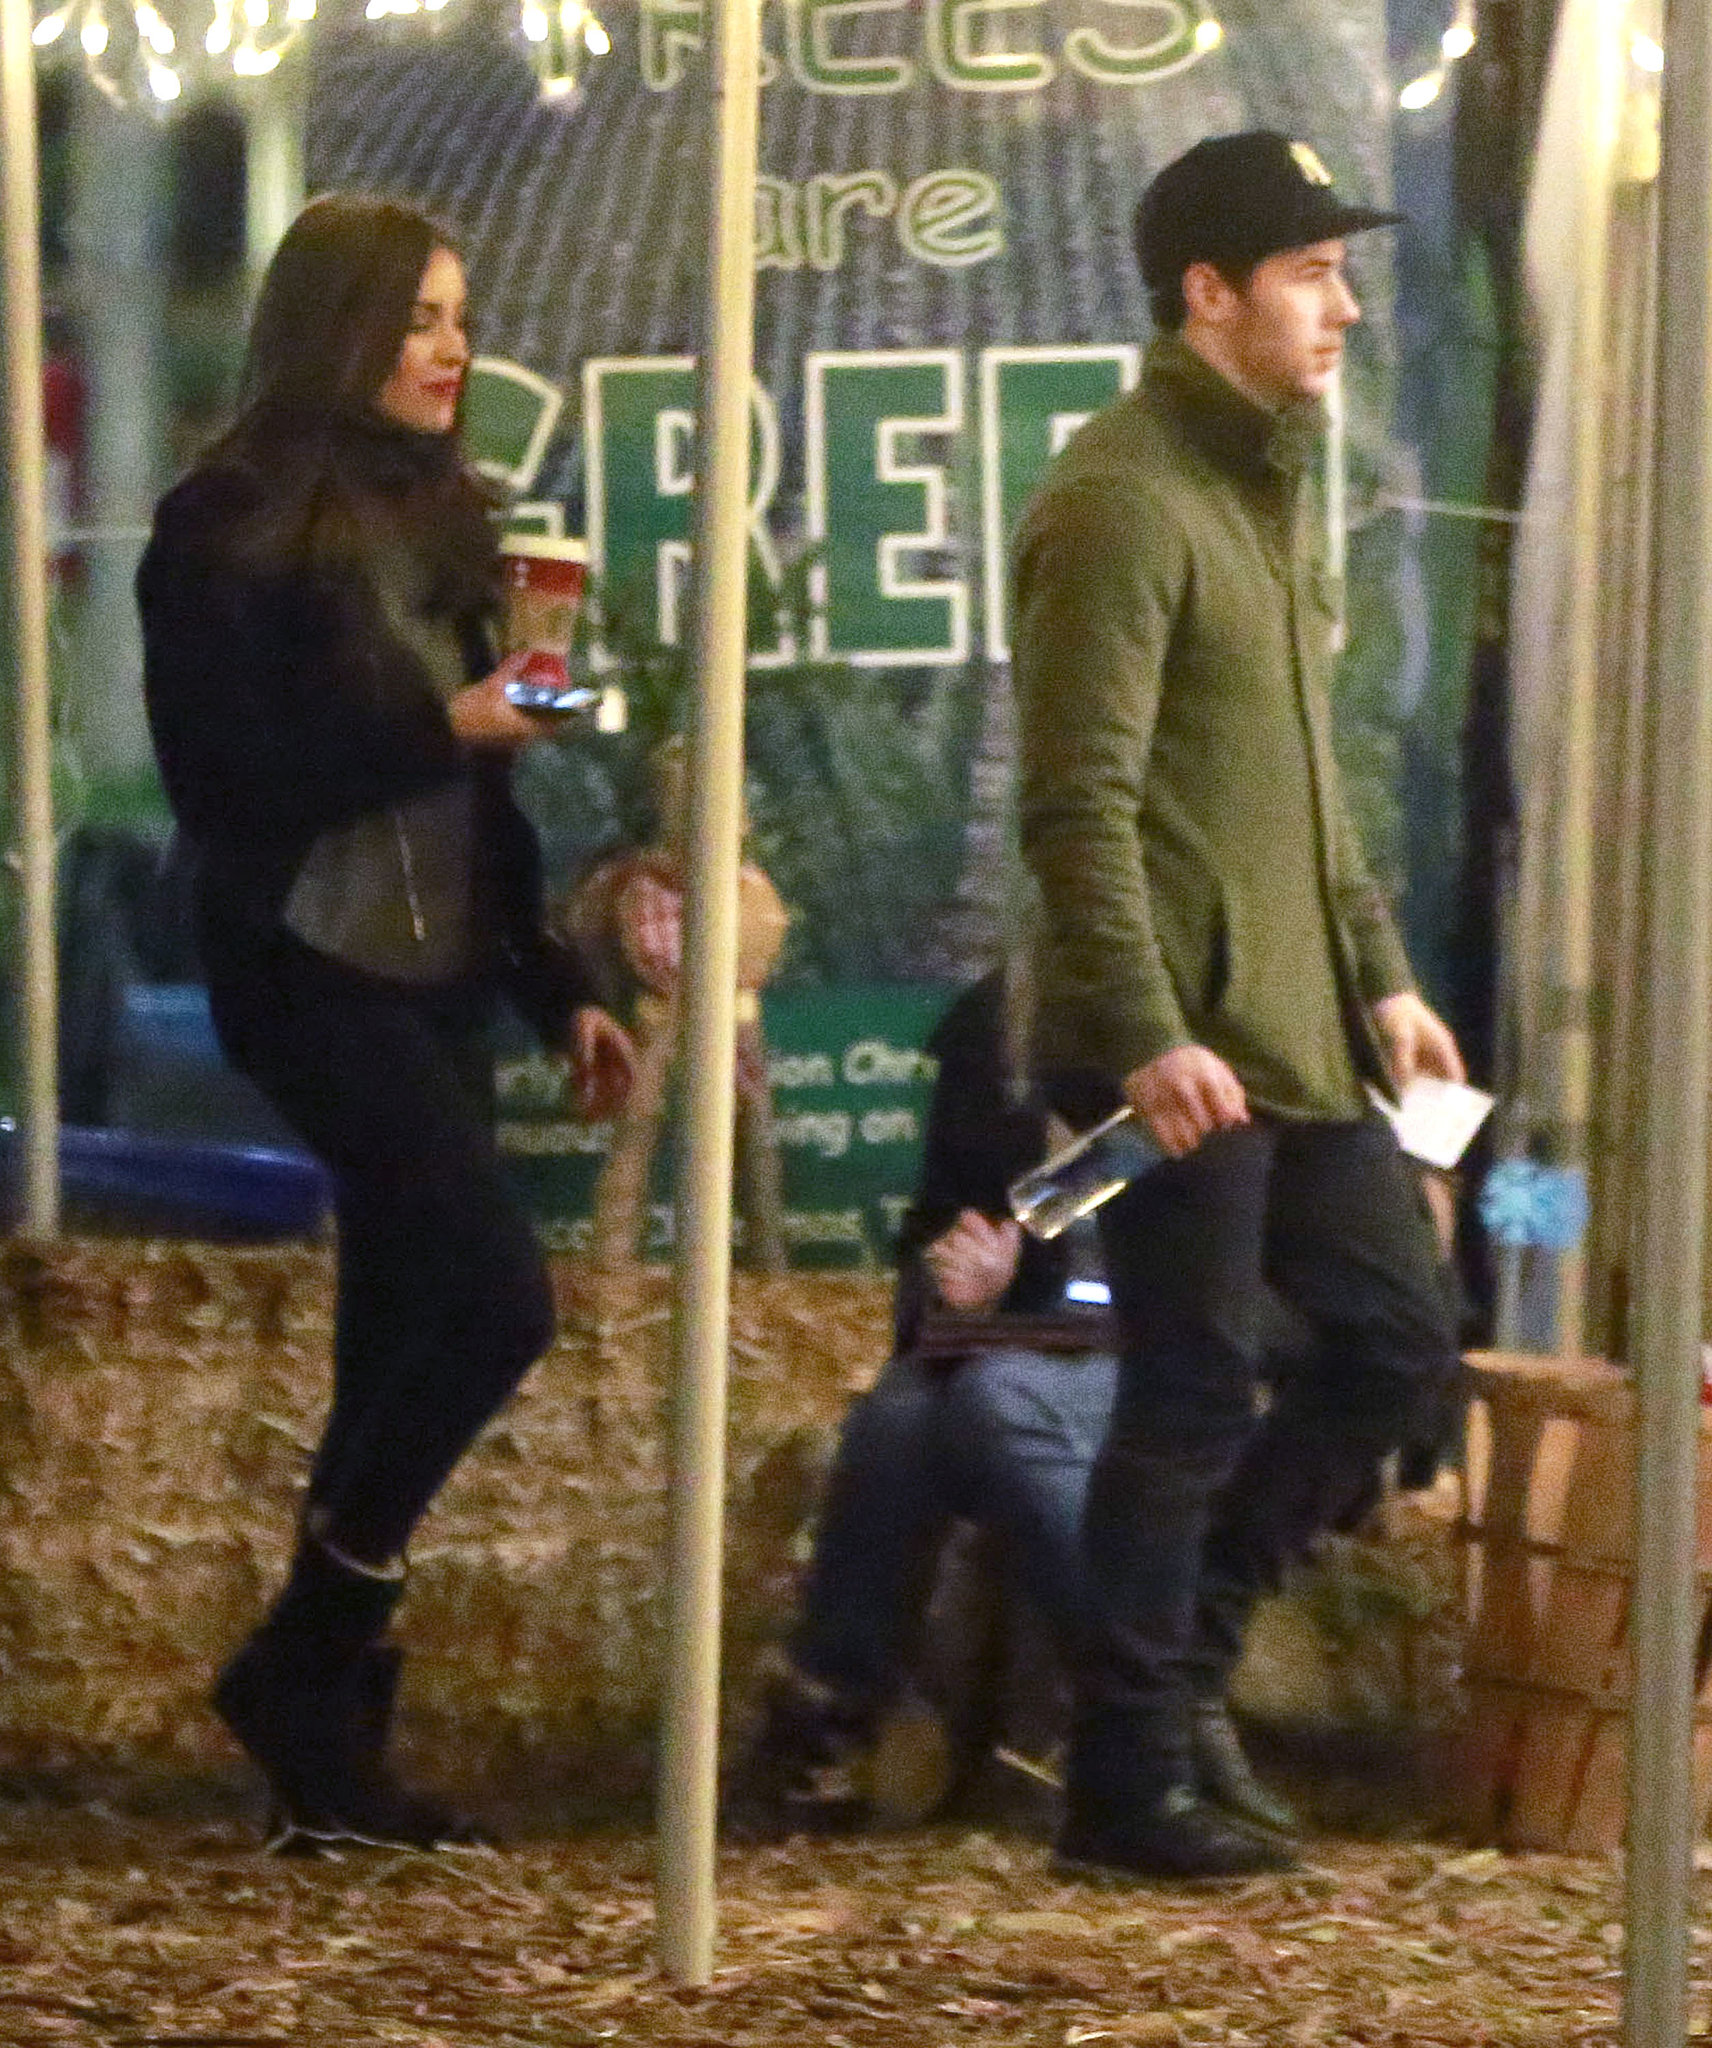 Nick Jonas and girlfriend Olivia Culpo wore matching boots while Christmas tree shopping.